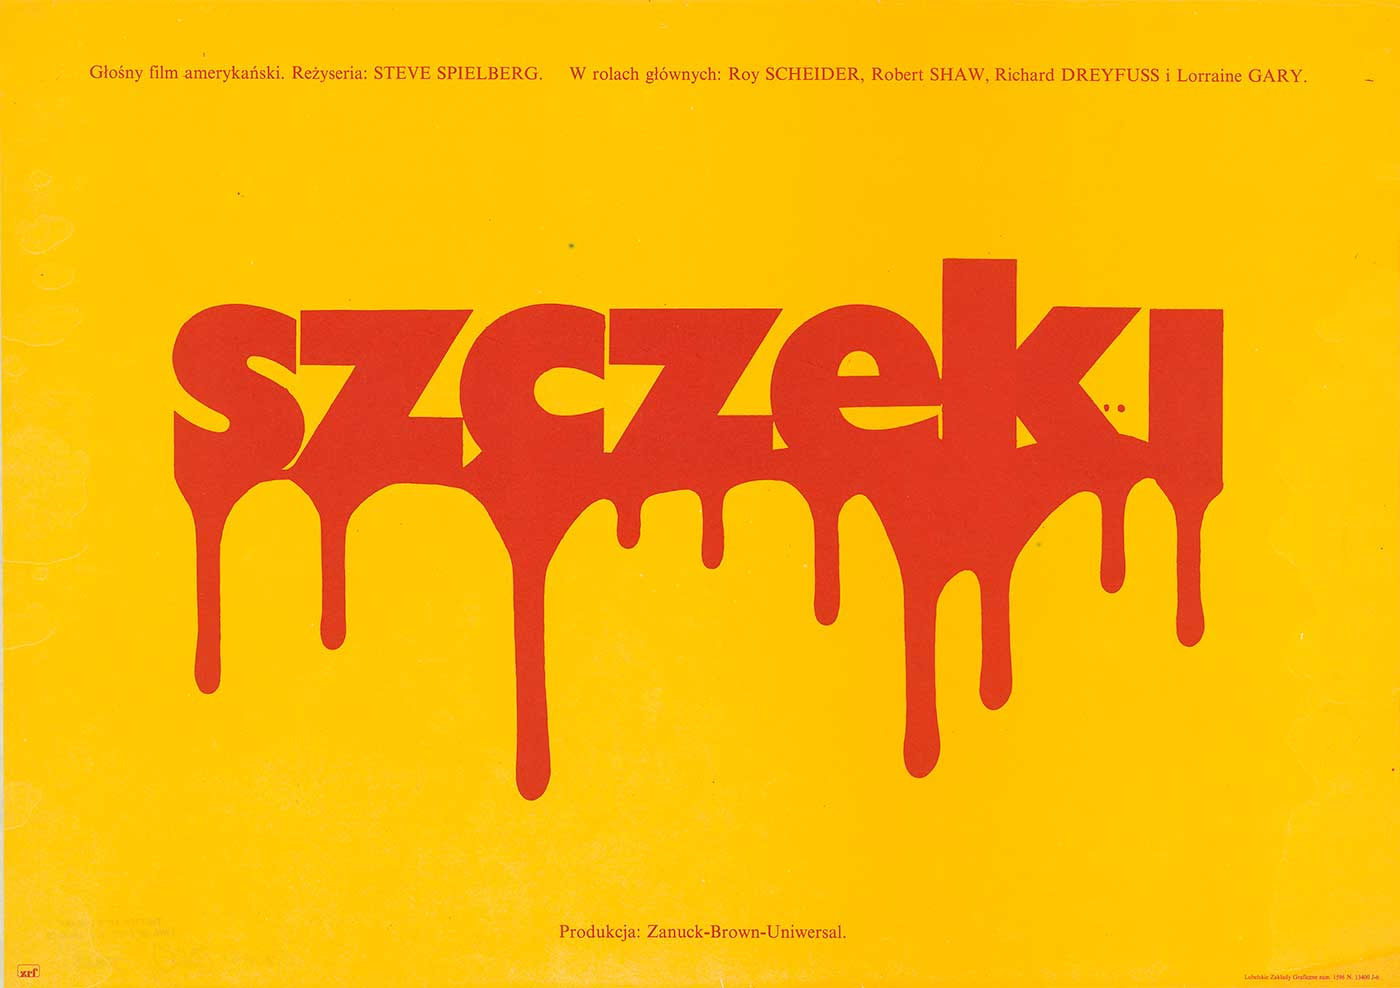 Polish Theatrical Poster